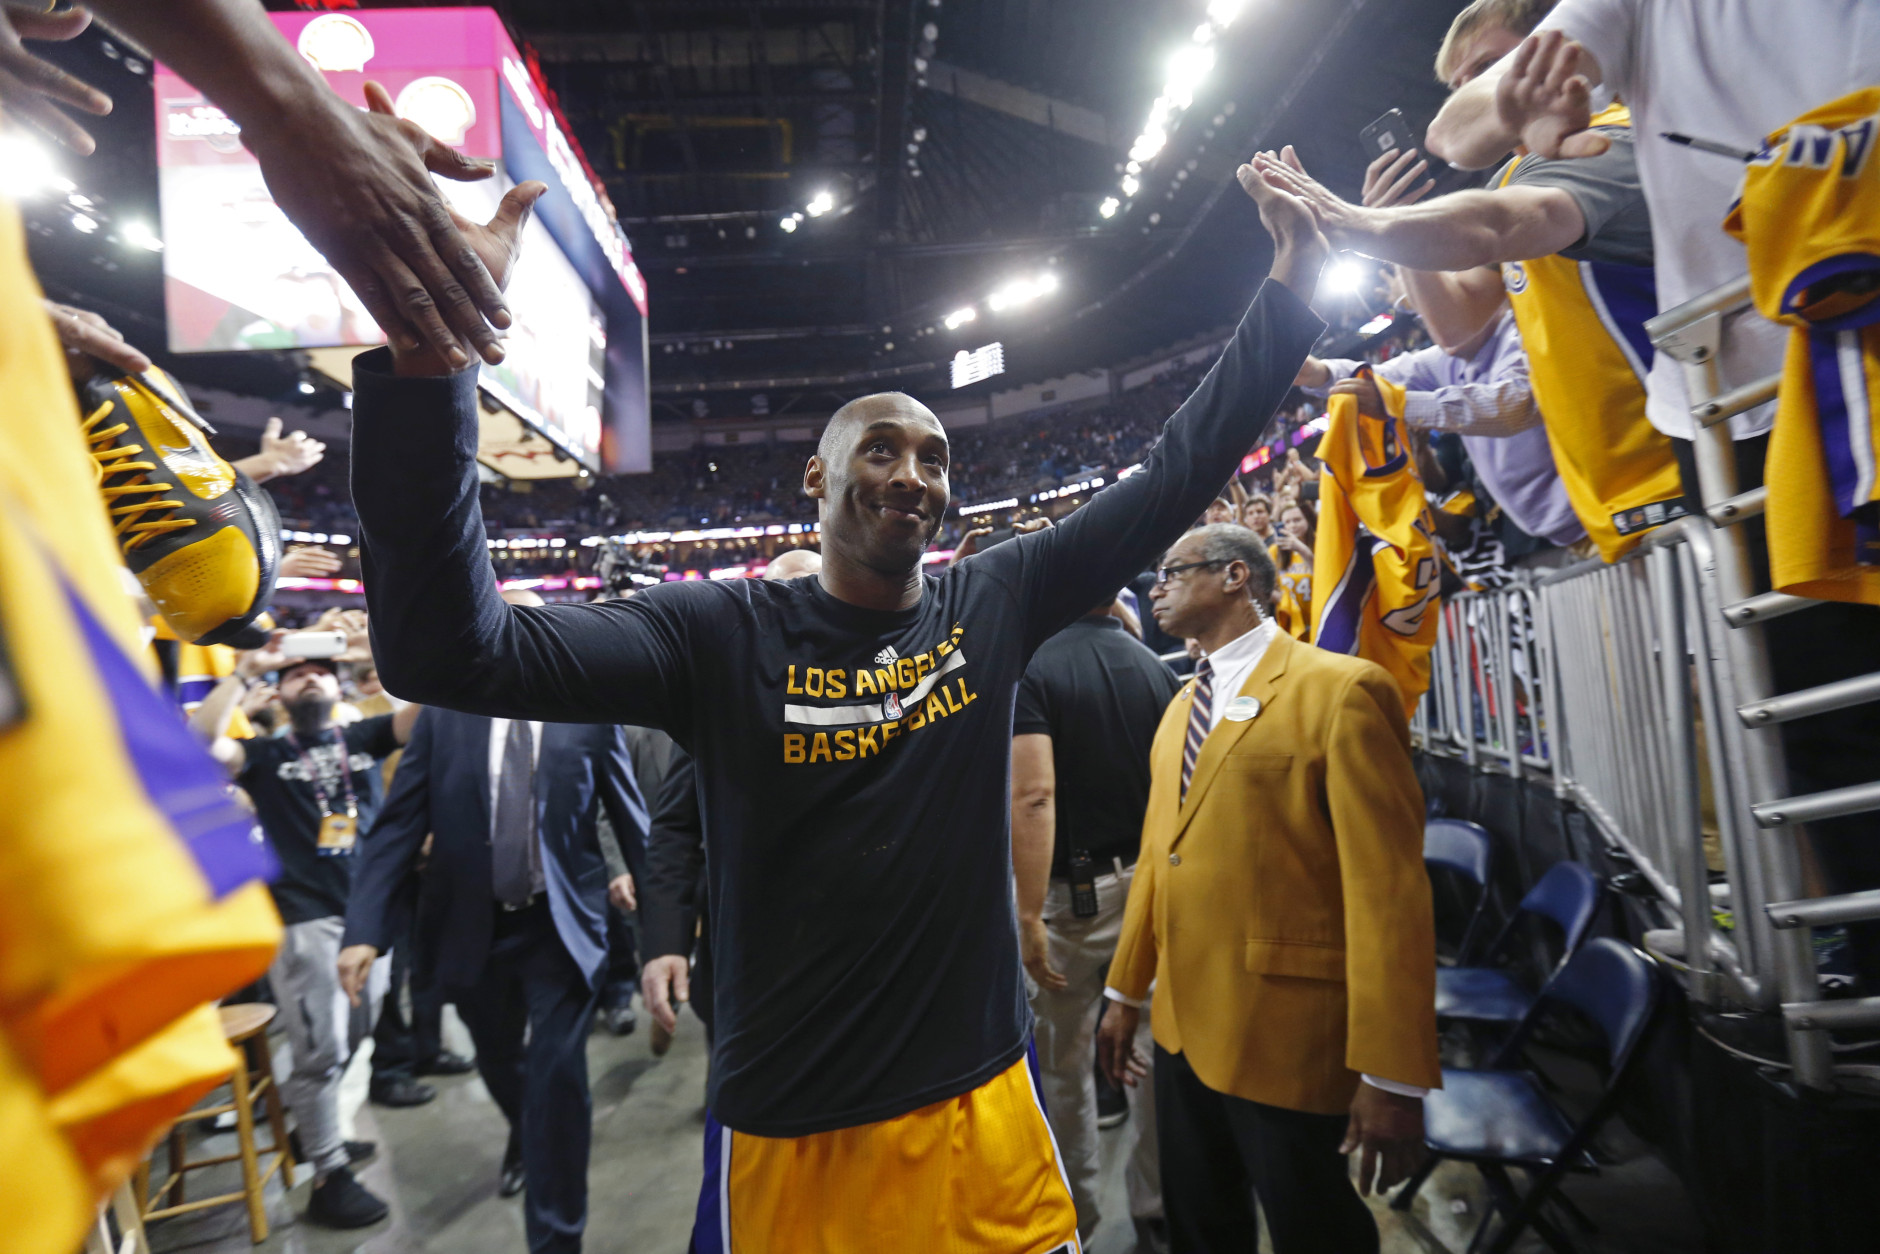 Los Angeles Lakers forward Kobe Bryant greets fans as he leaves the court after an NBA basketball game against the New Orleans Pelicans in New Orleans, Friday, April 8, 2016. The Pelicans won 110-102. Bryant says he will be retiring at the end of the season, thus his last NBA game in New Orleans. (AP Photo/Gerald Herbert)